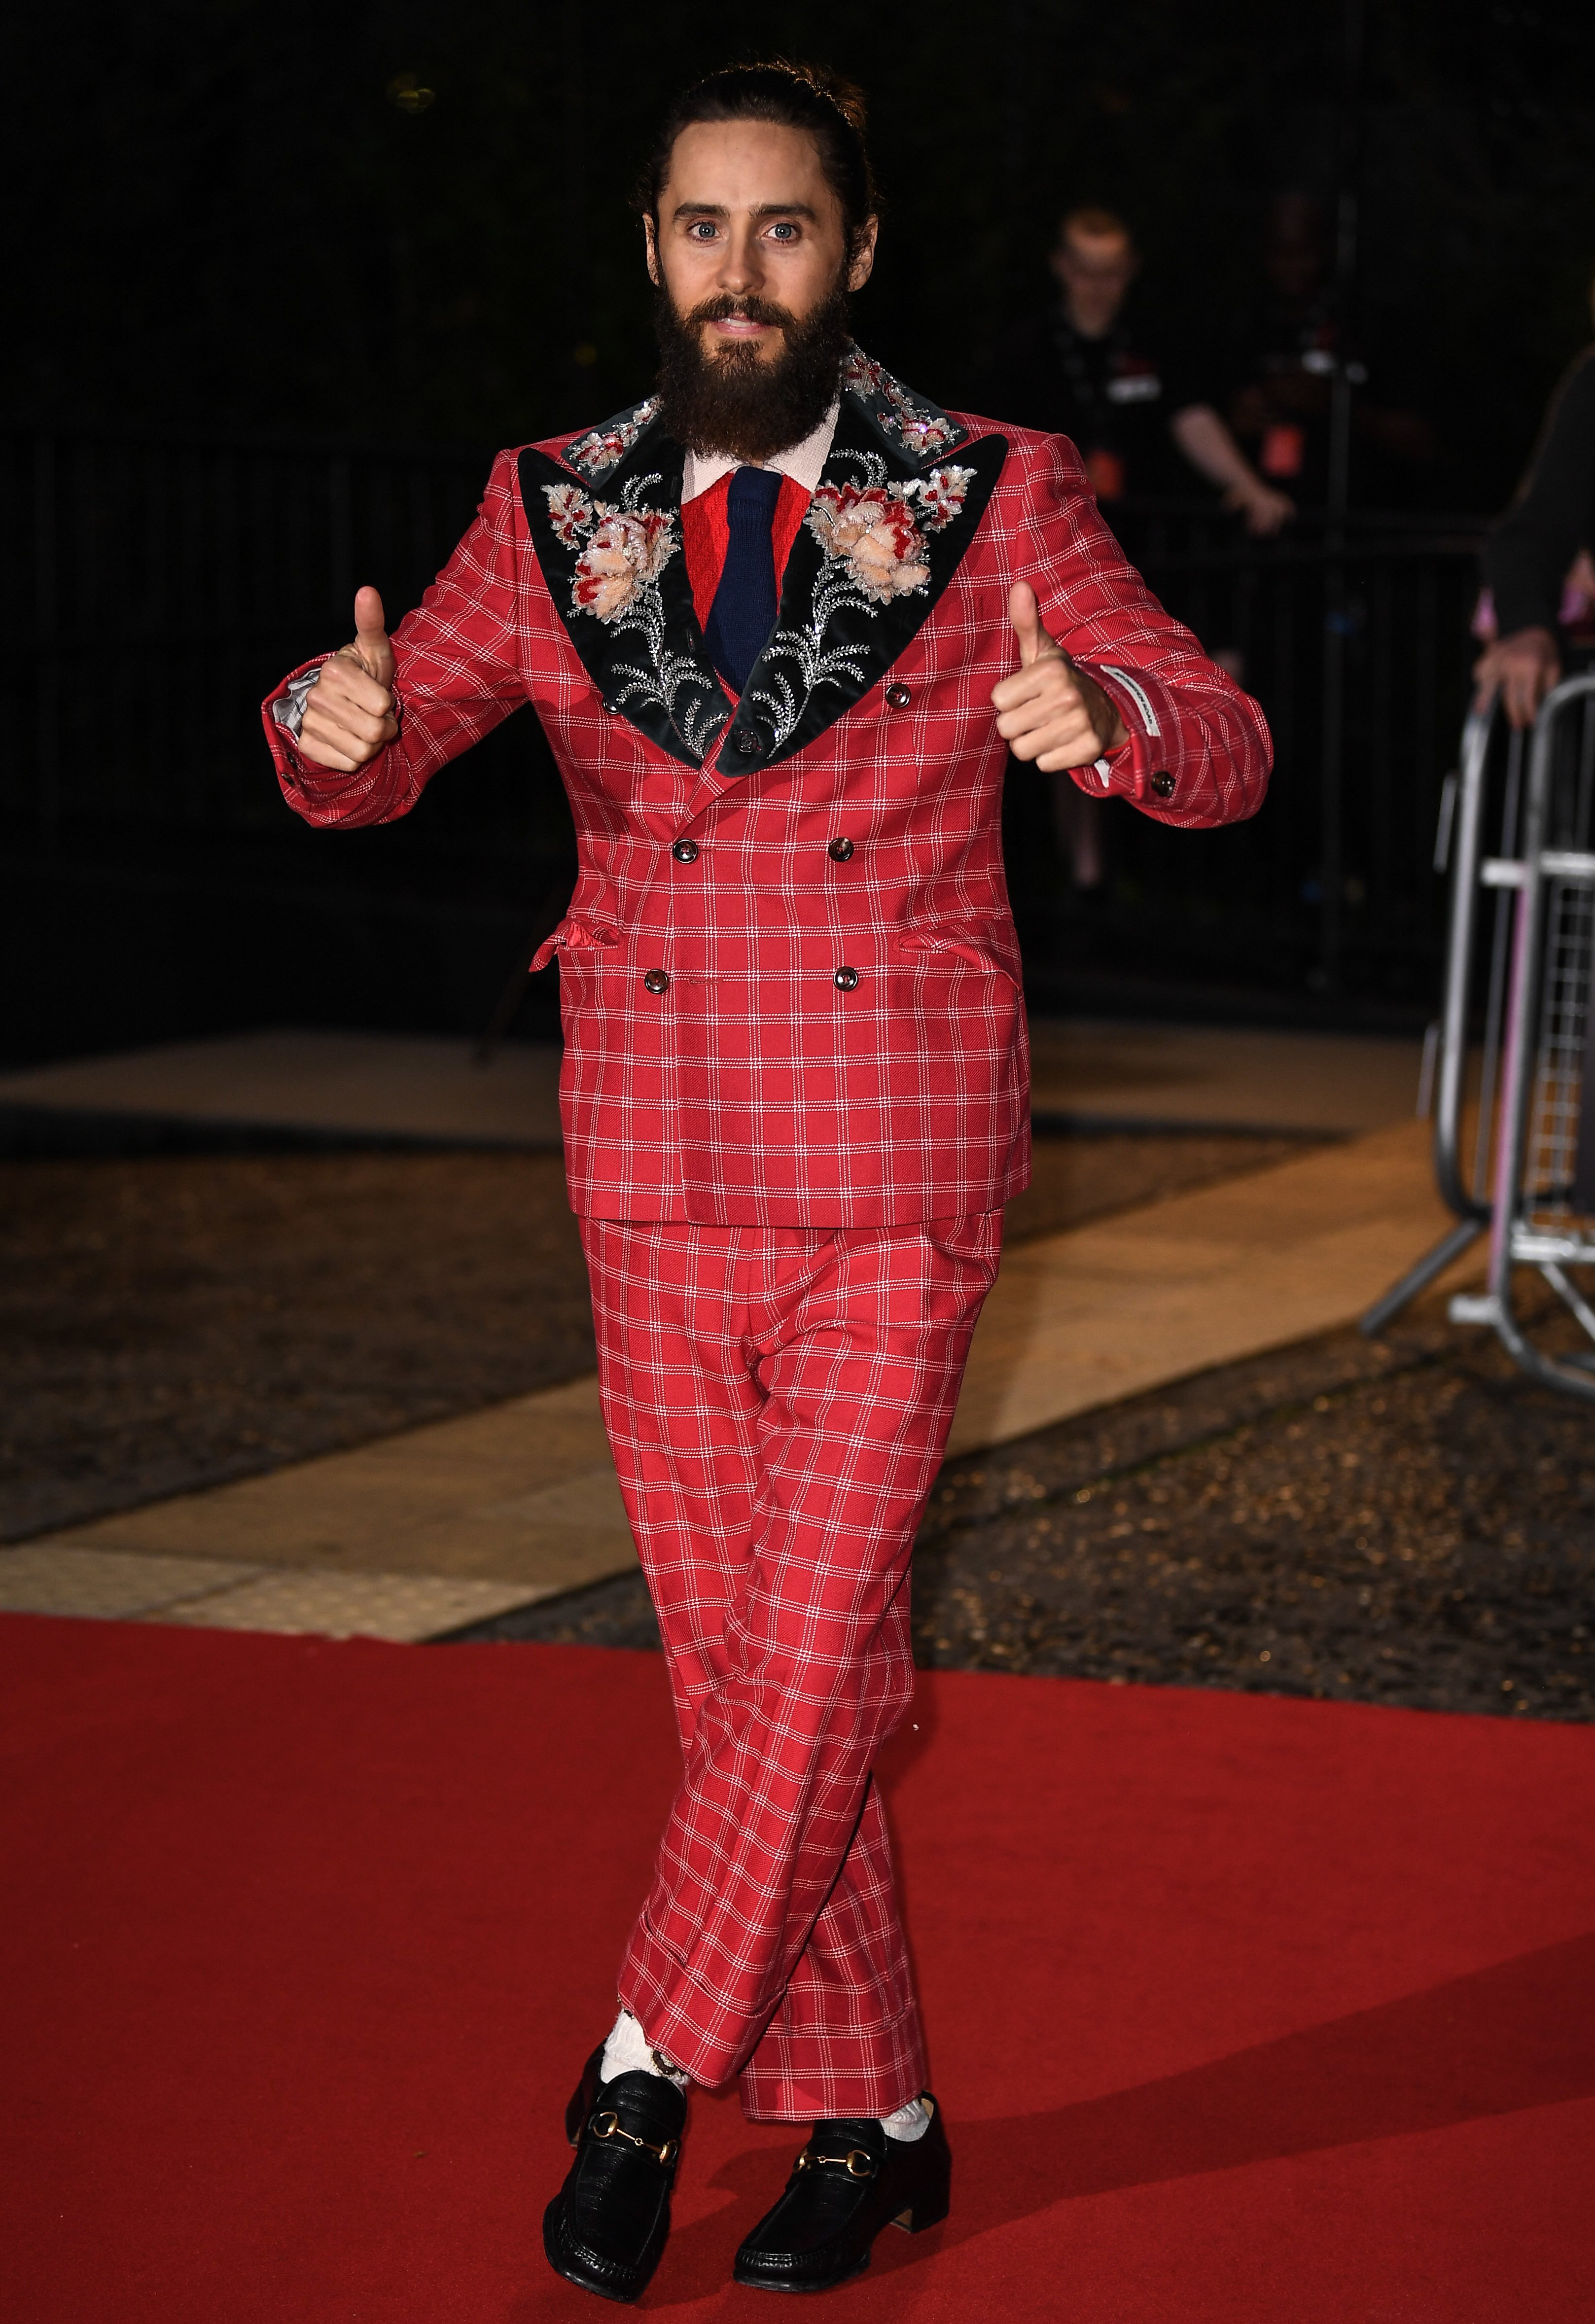 Jared Leto attends the GQ Men of the Year Awards at Tate Modern in London on Sept. 5, 2017.